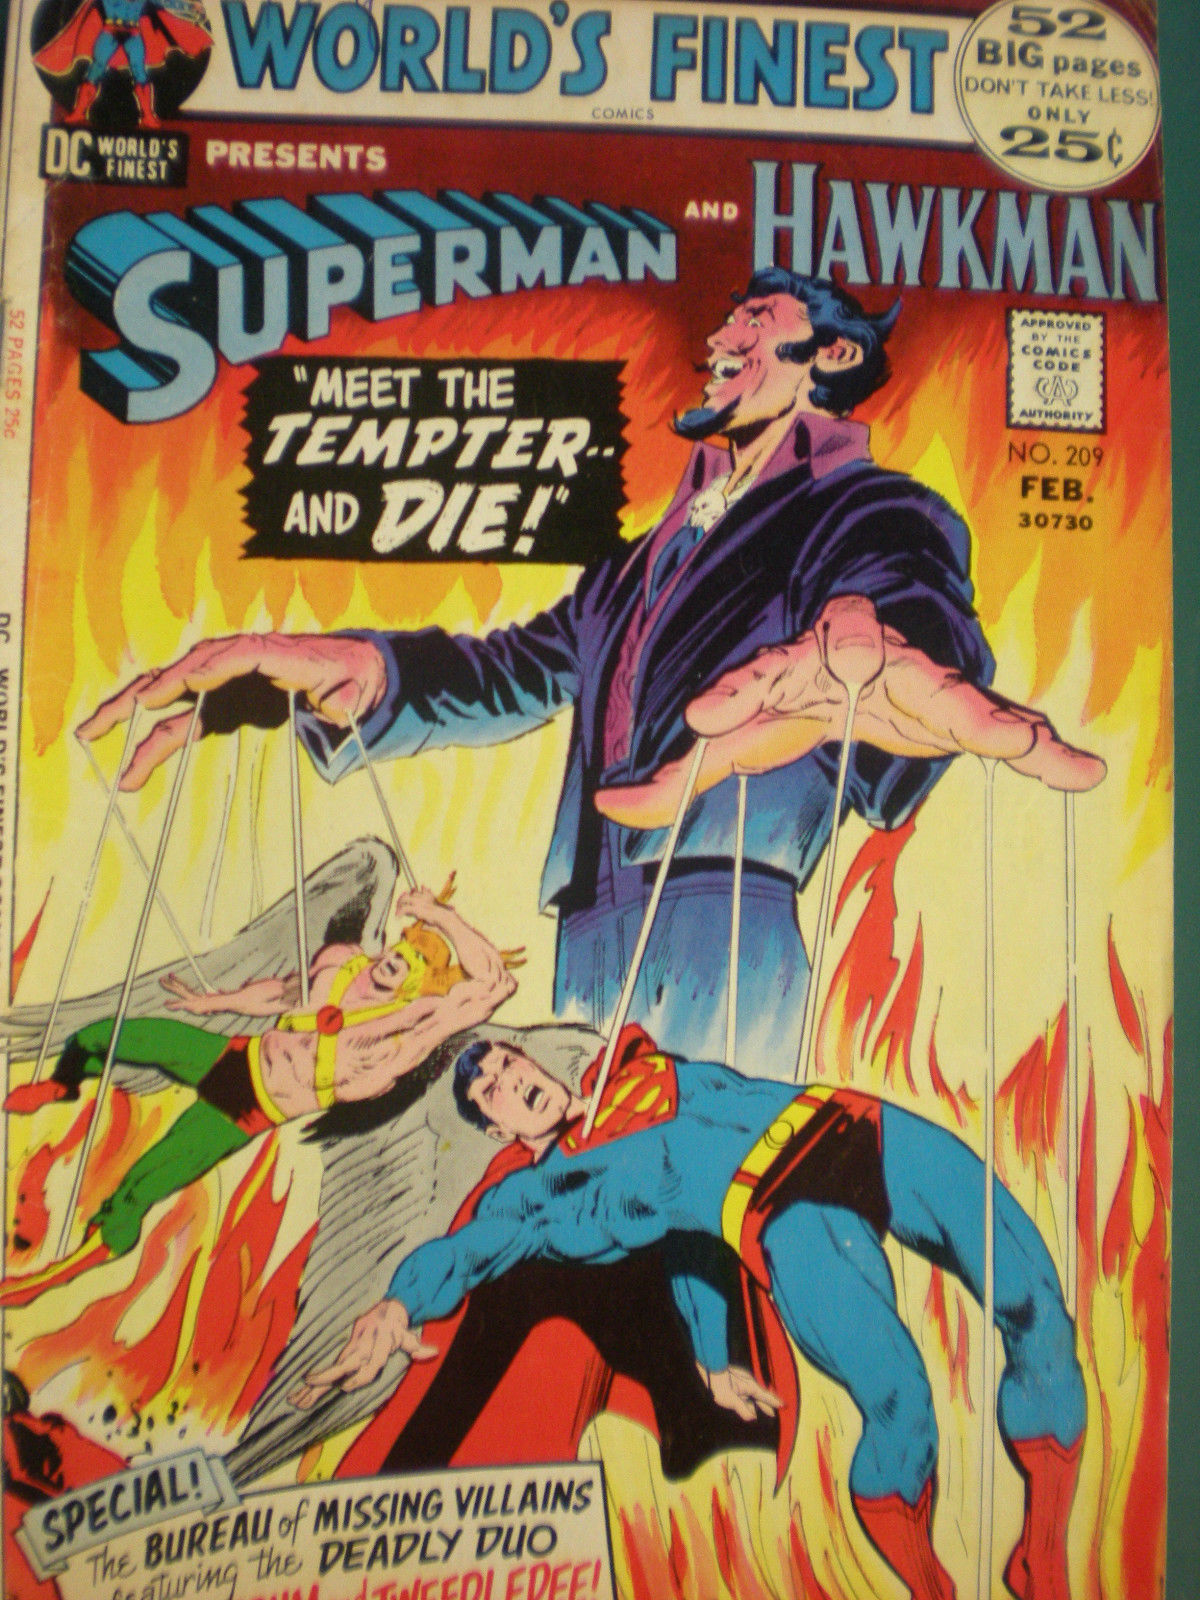 Primary image for Superman and Hawkman Feb 209 Vintage Classic Comic A Real Gem!